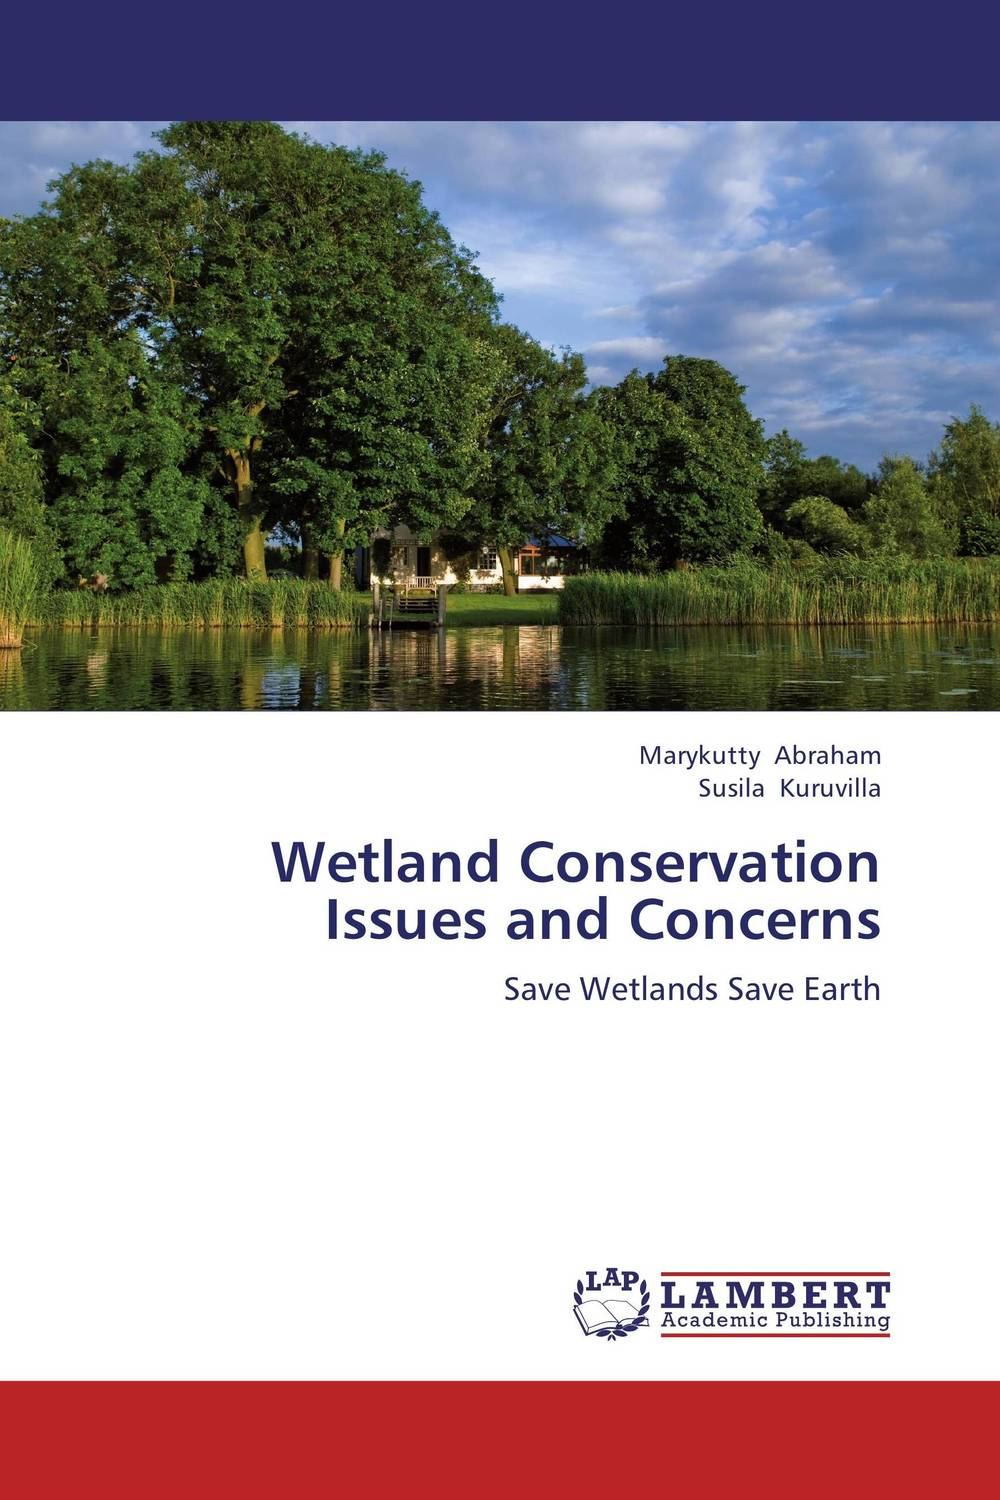 Wetland Conservation Issues and Concerns